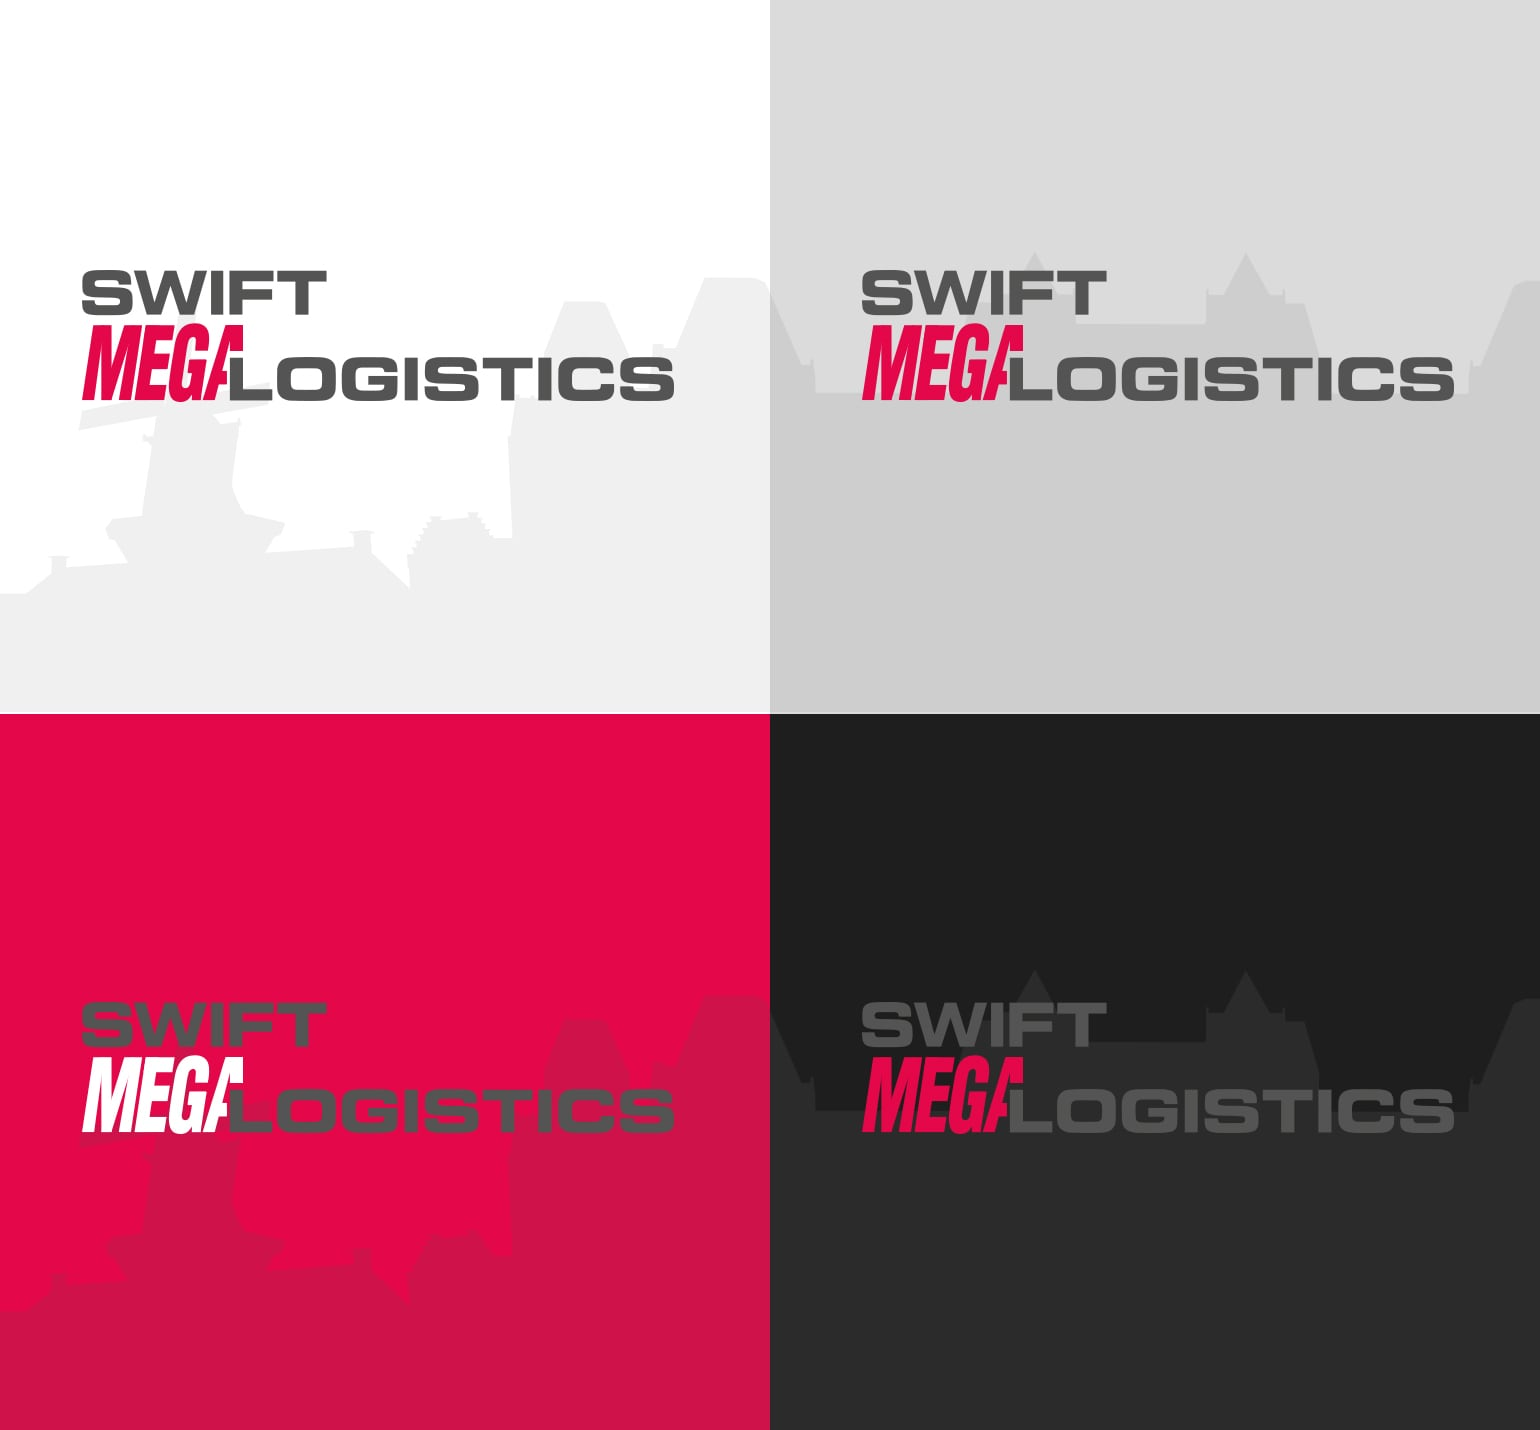 Swift Koeriers - Logo kleurenstelling